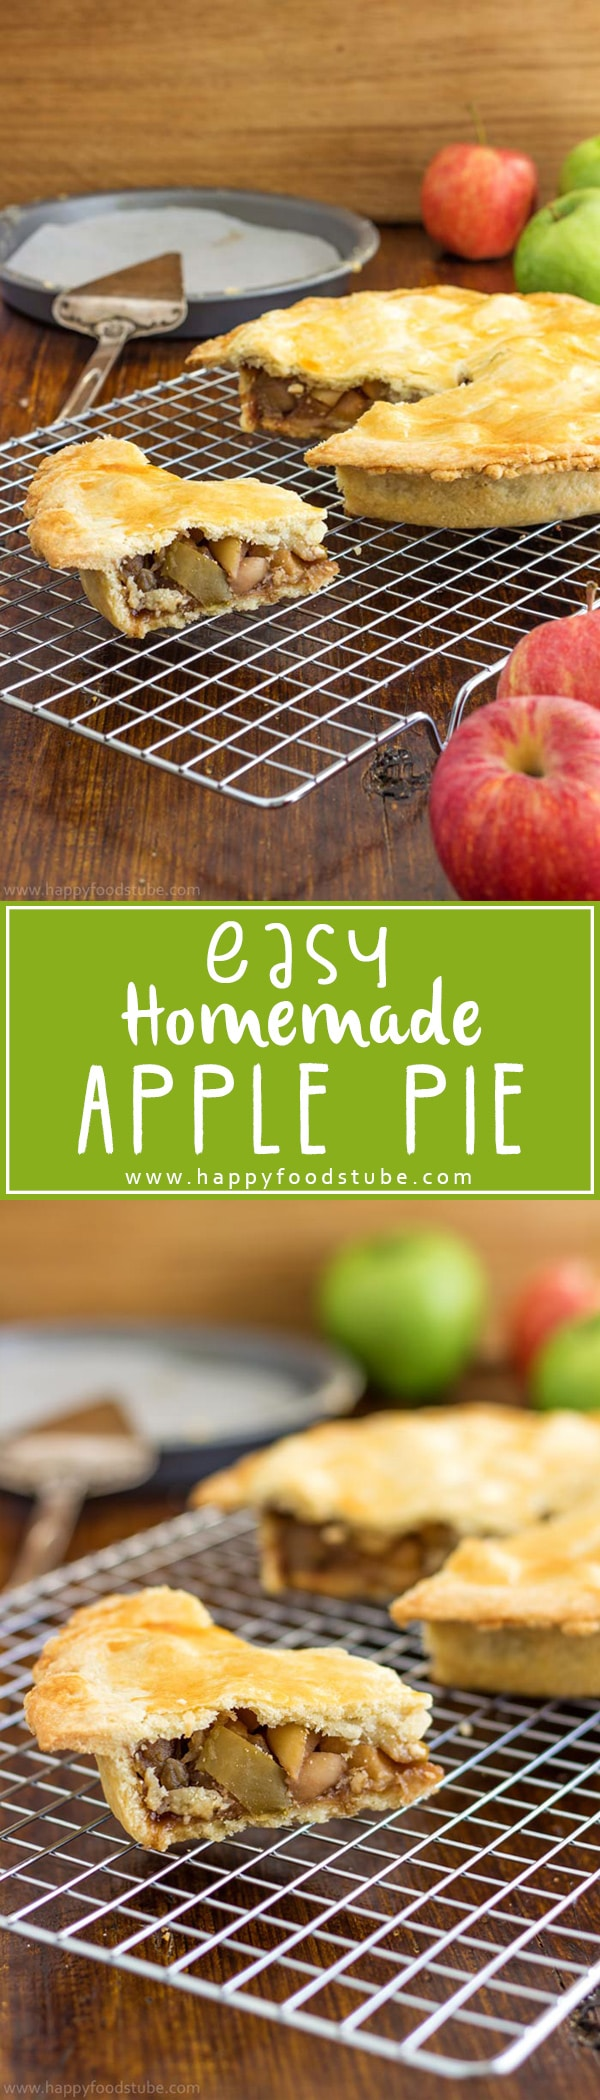 Easy homemade apple pie recipe with shortcrust pastry is as delicious as it sounds! Made from scratch including the pastry crust and simple apple pie filling! Only 4 ingredients! | happyfoodstube.com